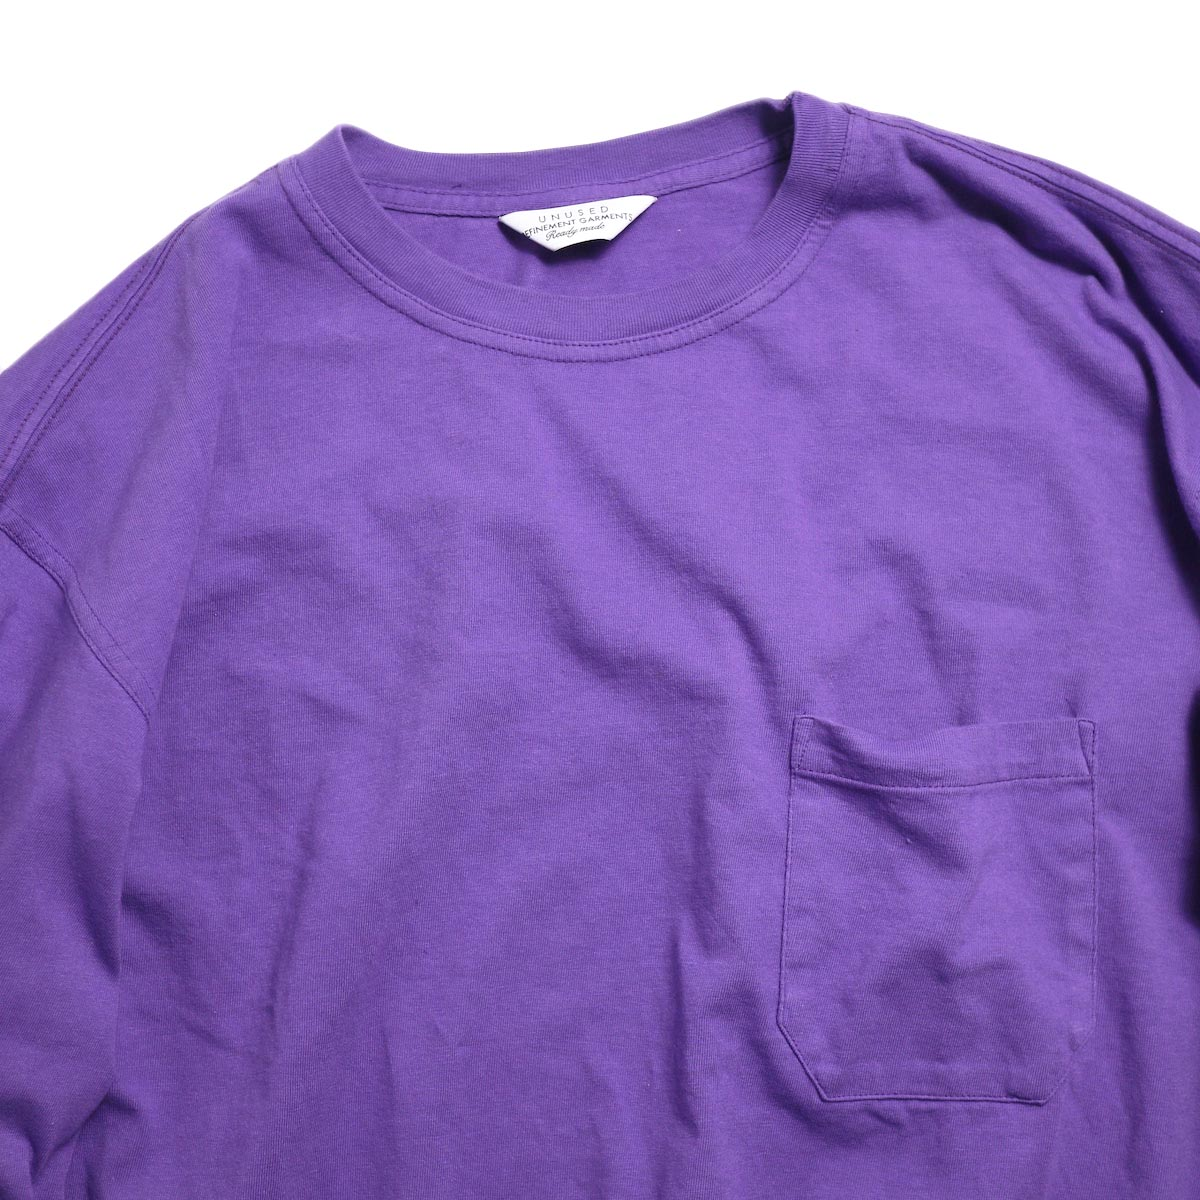 UNUSED / US1595 Long Sleeve Pocket T-Shirt -Purple 首回り